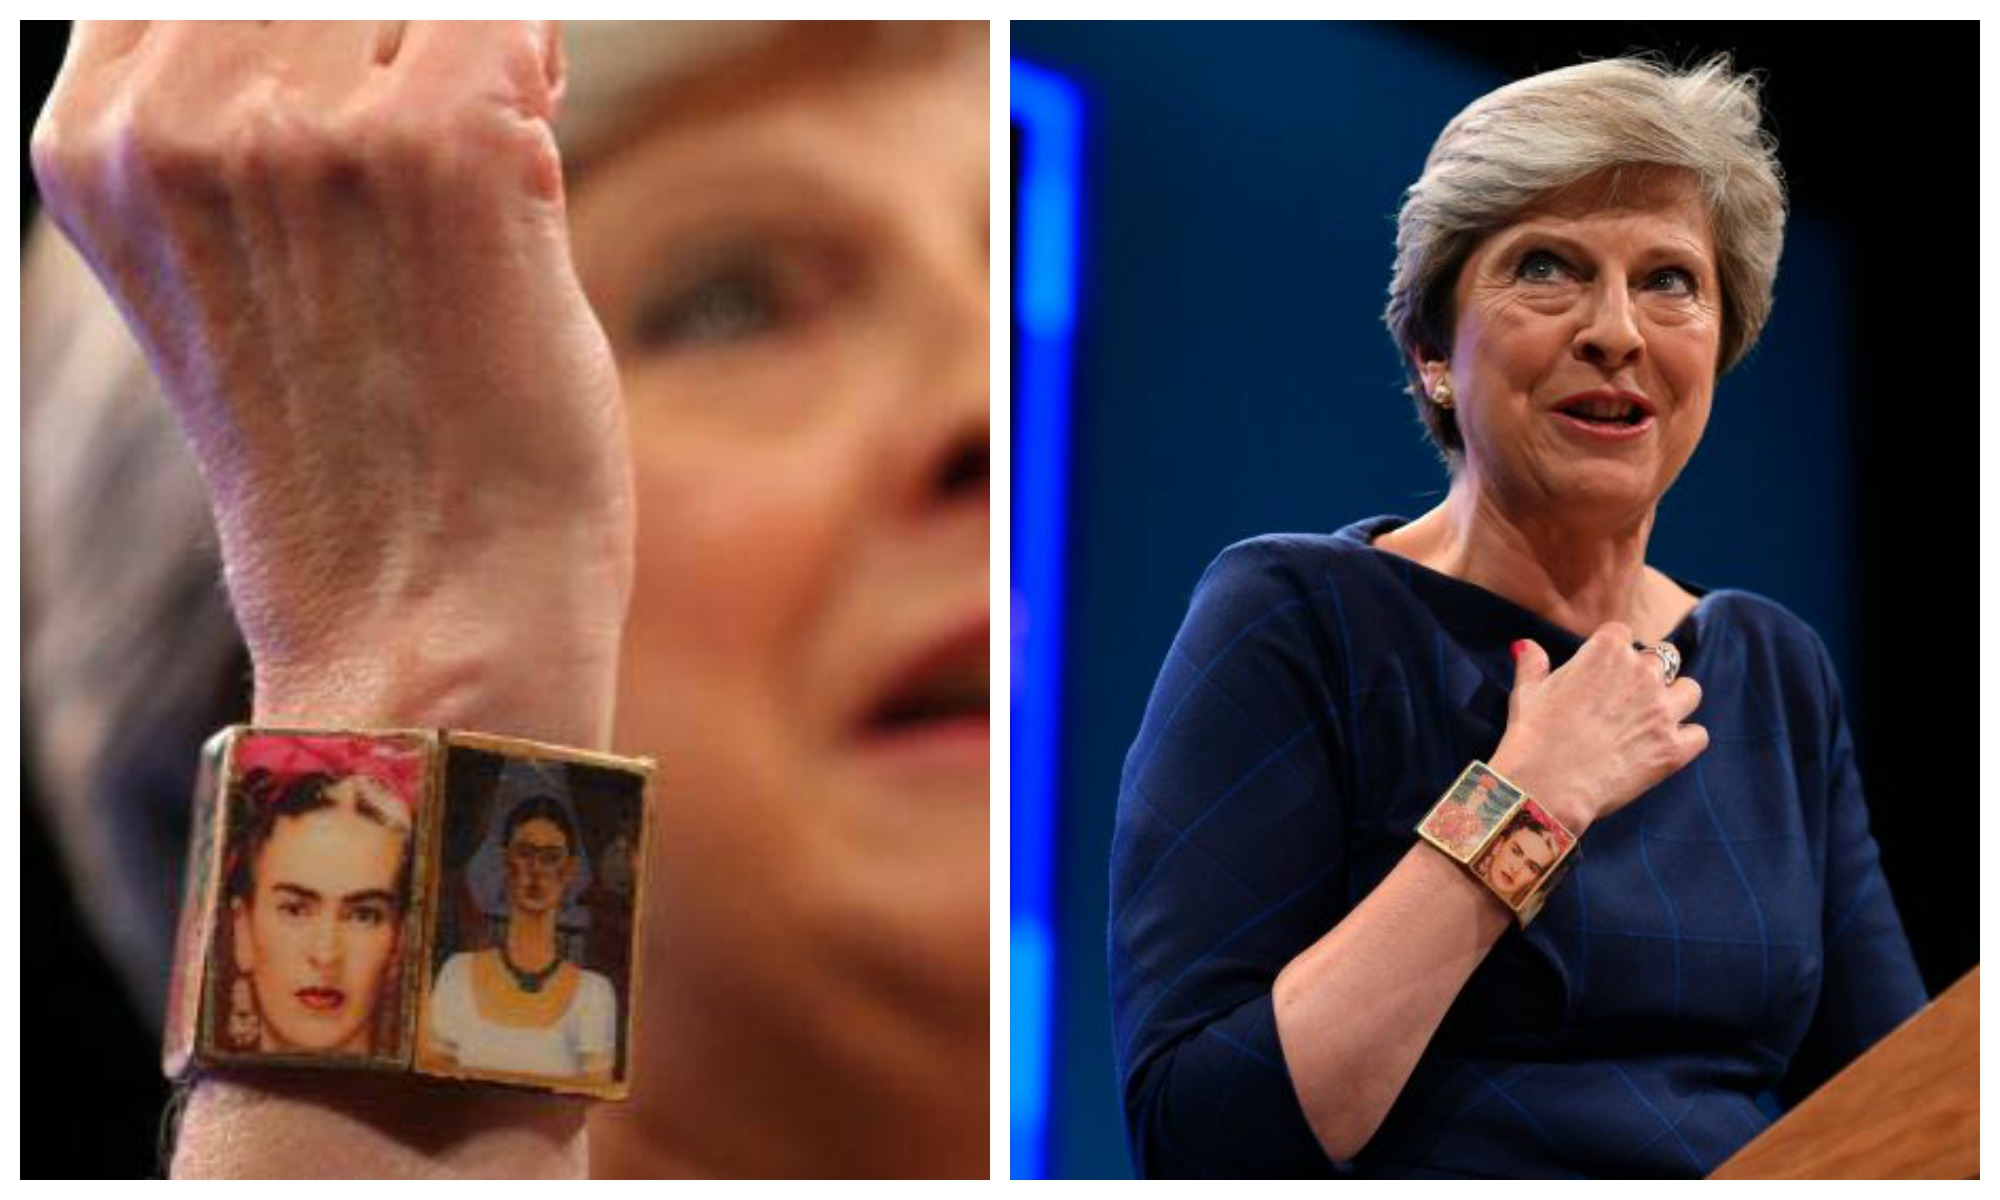 British PM Theresa May wore a Frida Kahlo bracelet and